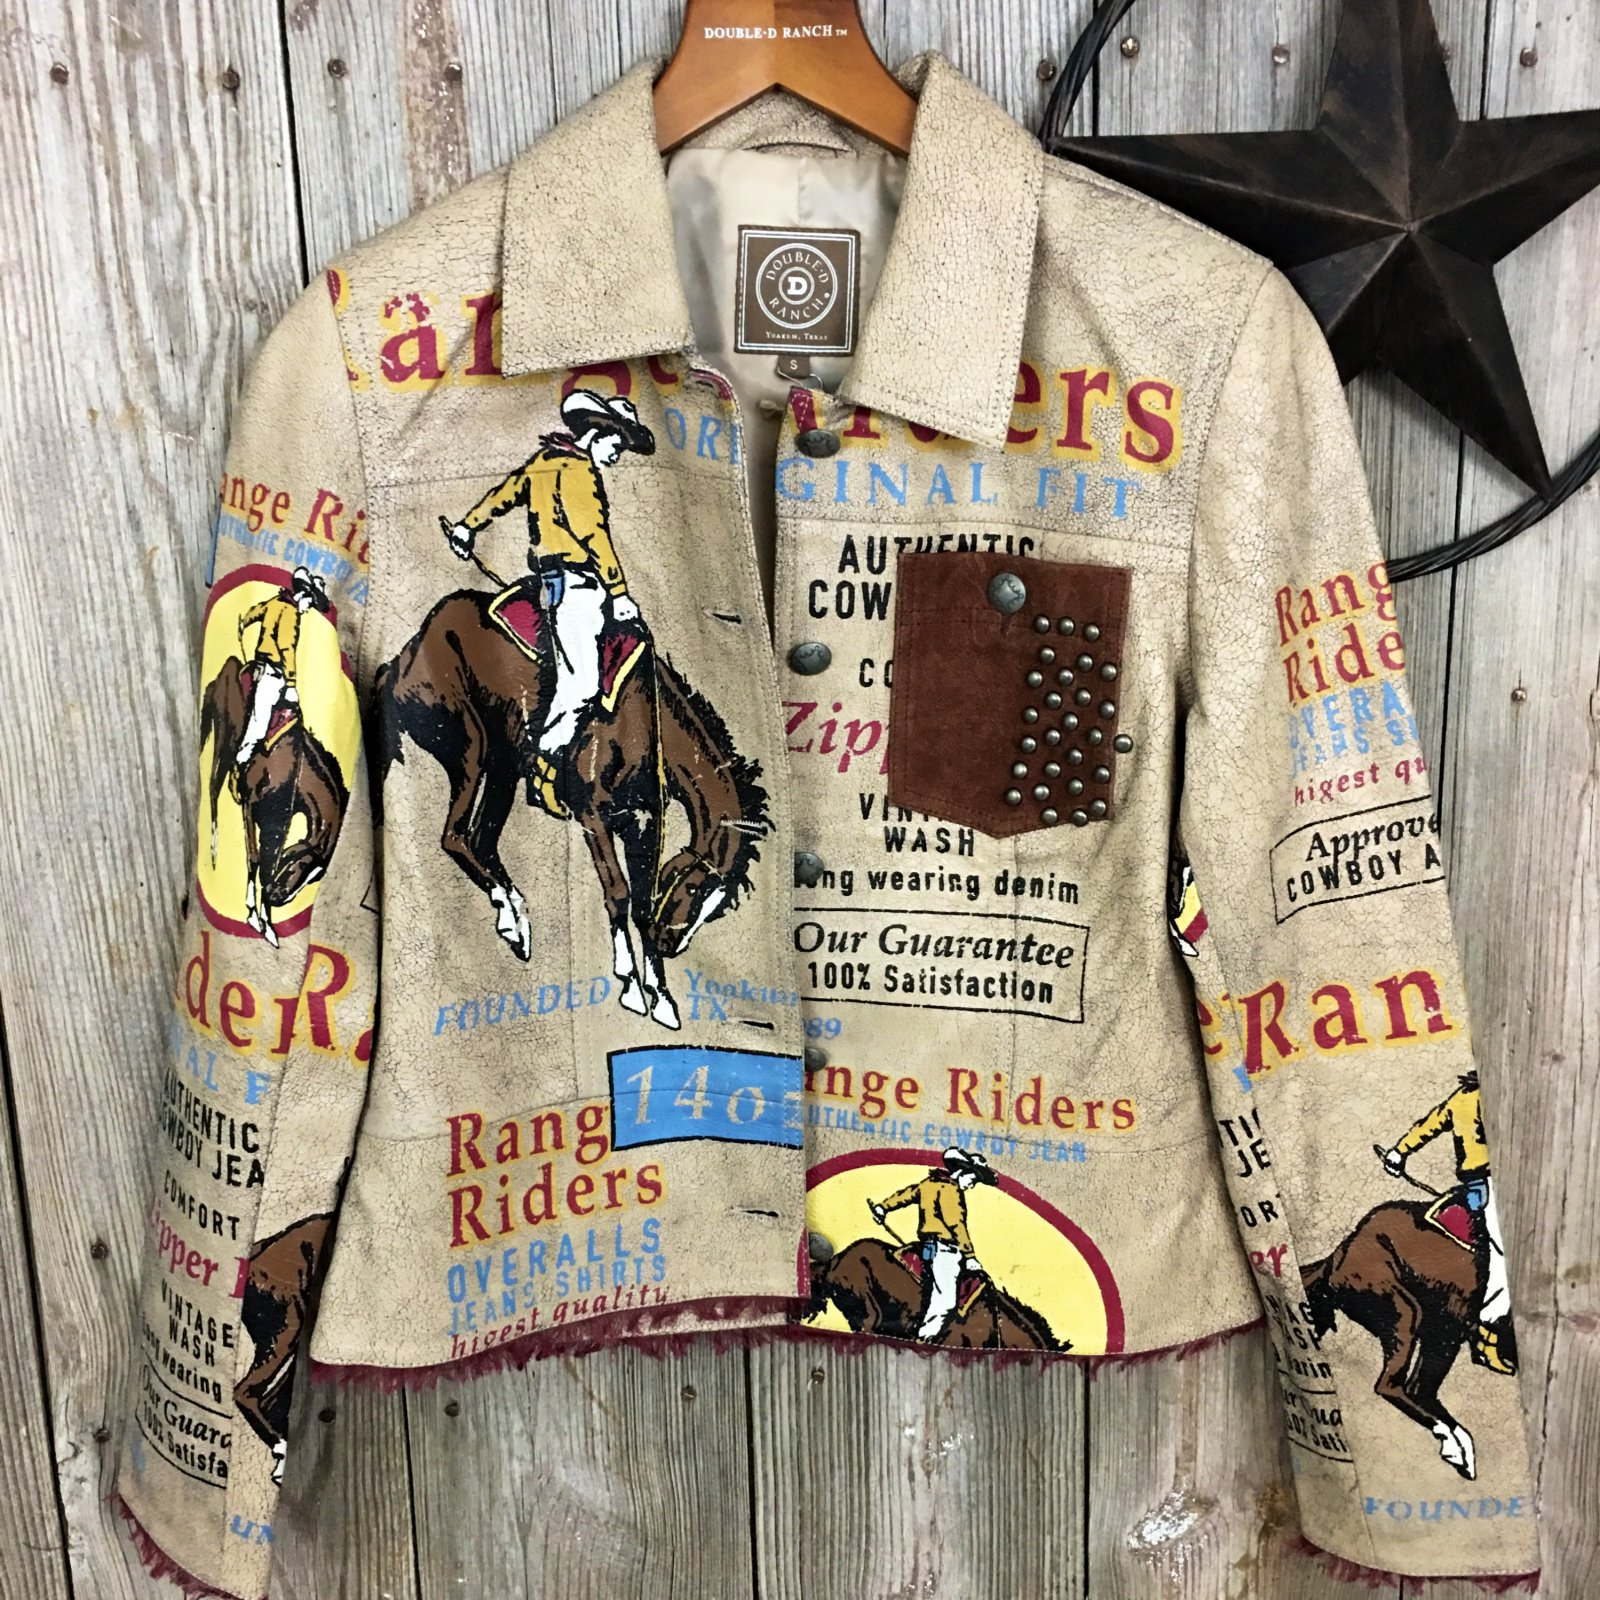 Range Rider Jacket from Double D Ranch